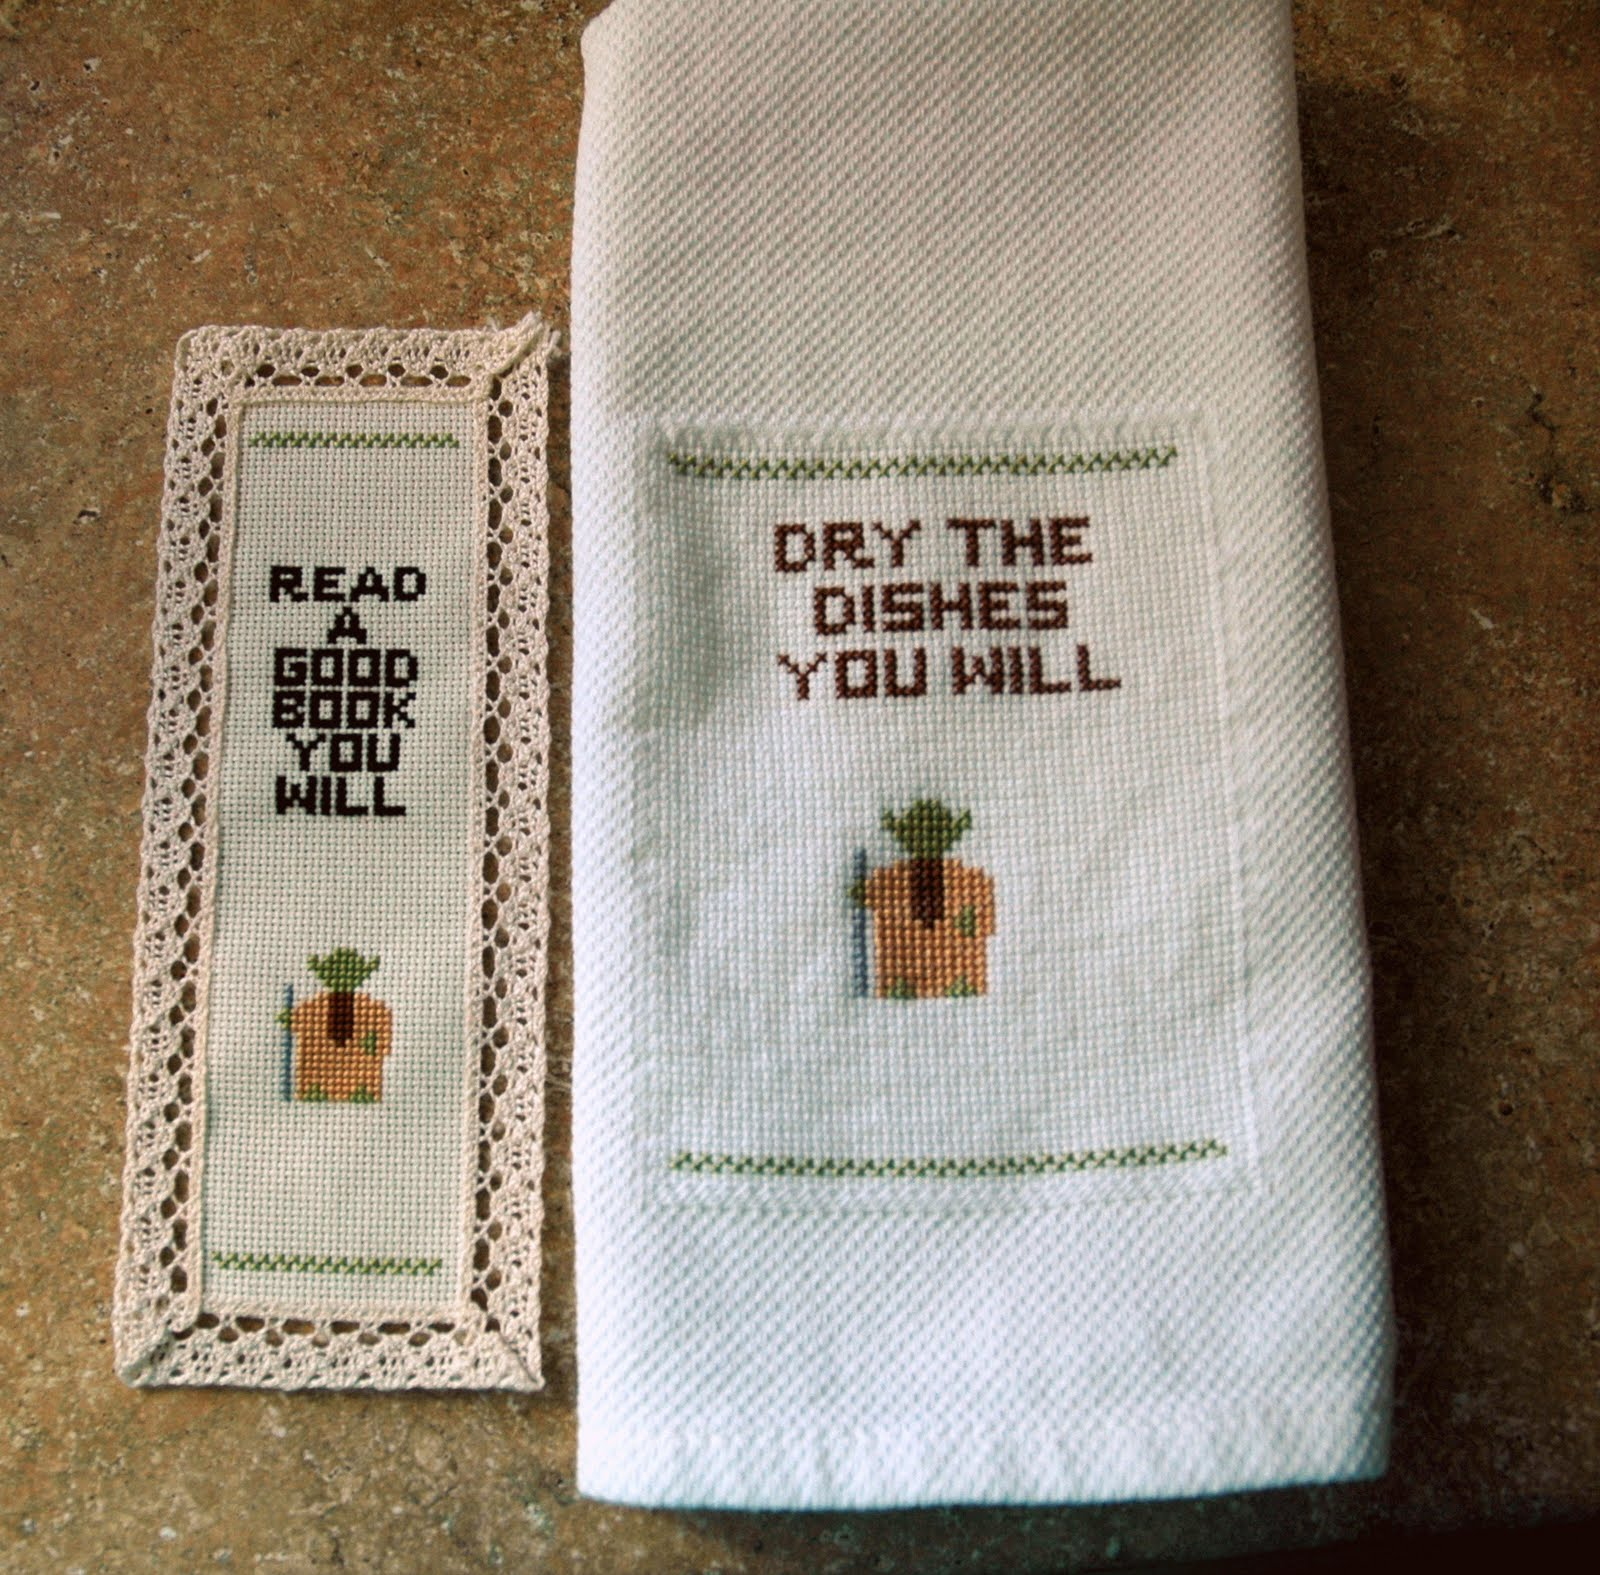 wedding gifts onesies and one really cool wedding gifts Wedding Gifts Onesies and One Really Cool Craft Book